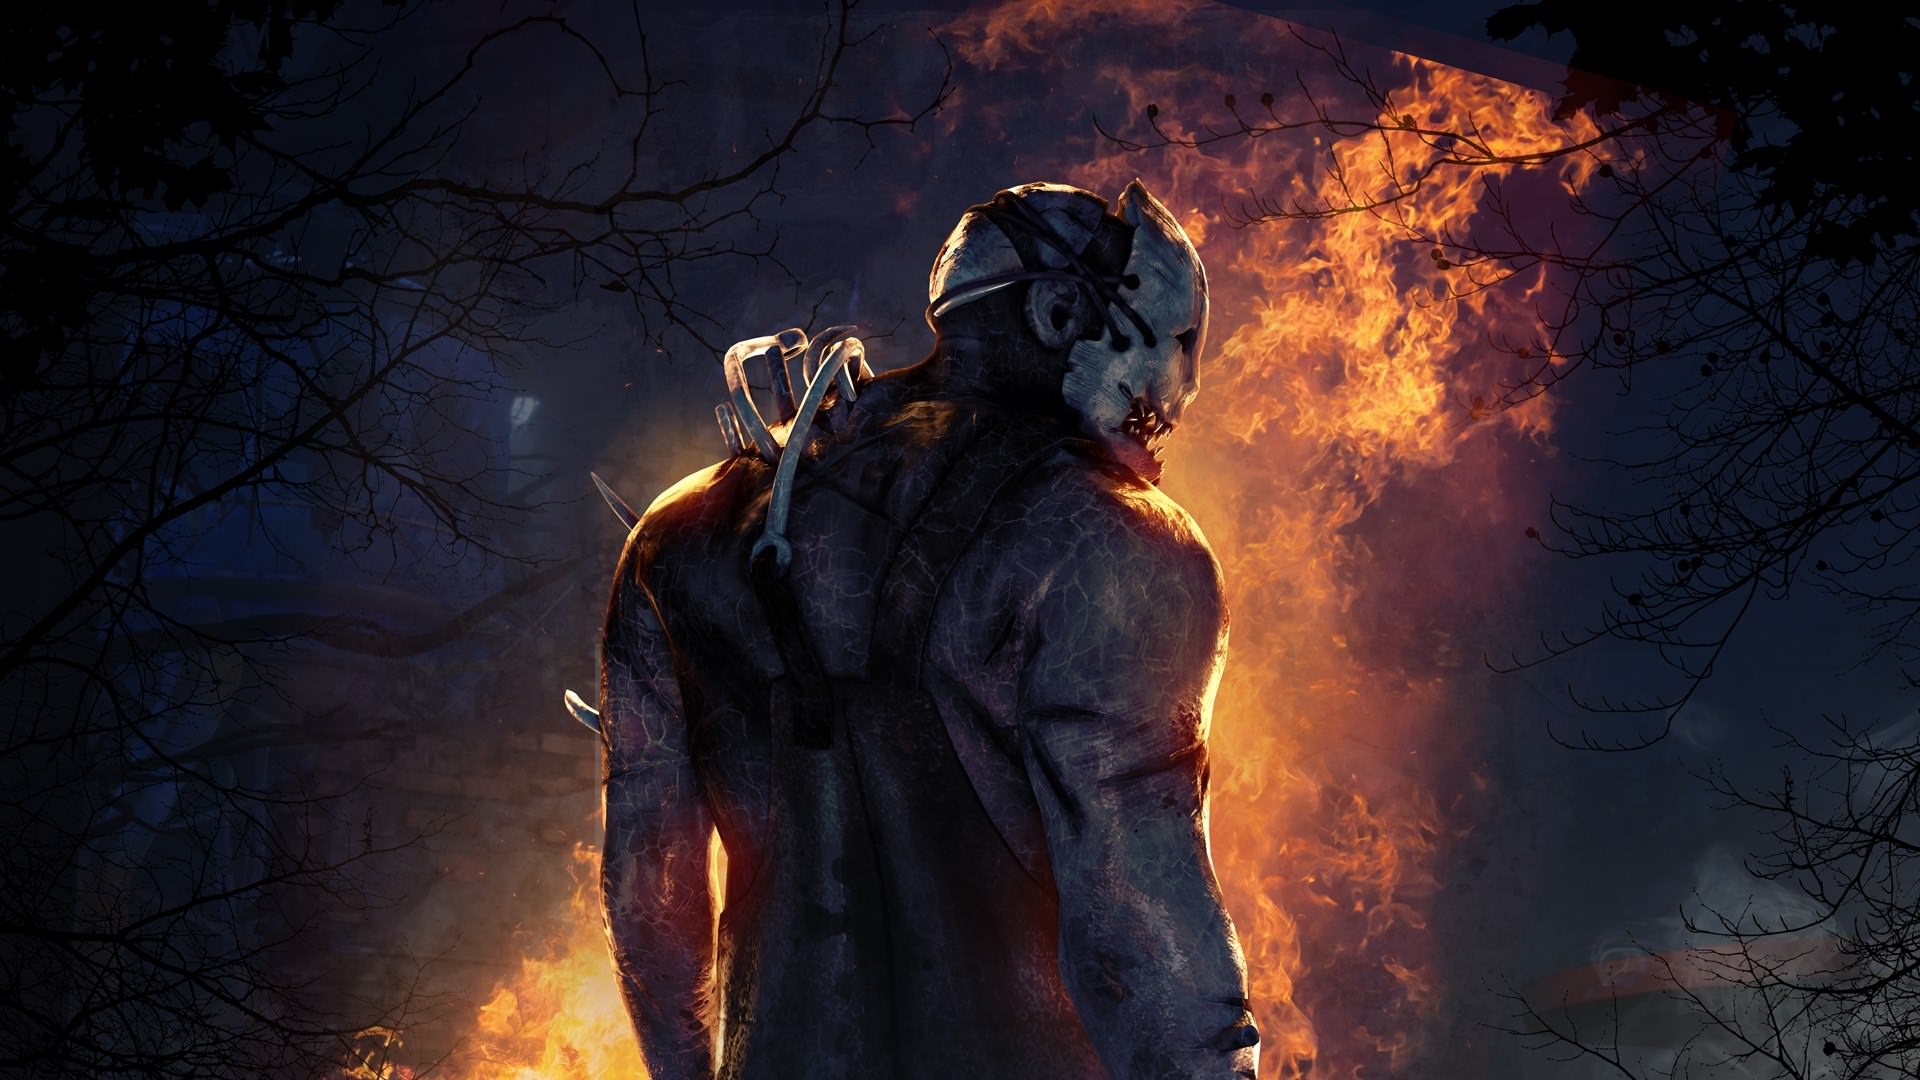 Resident Evil در رویداد کراس اور بعدی بازی Dead By Daylight